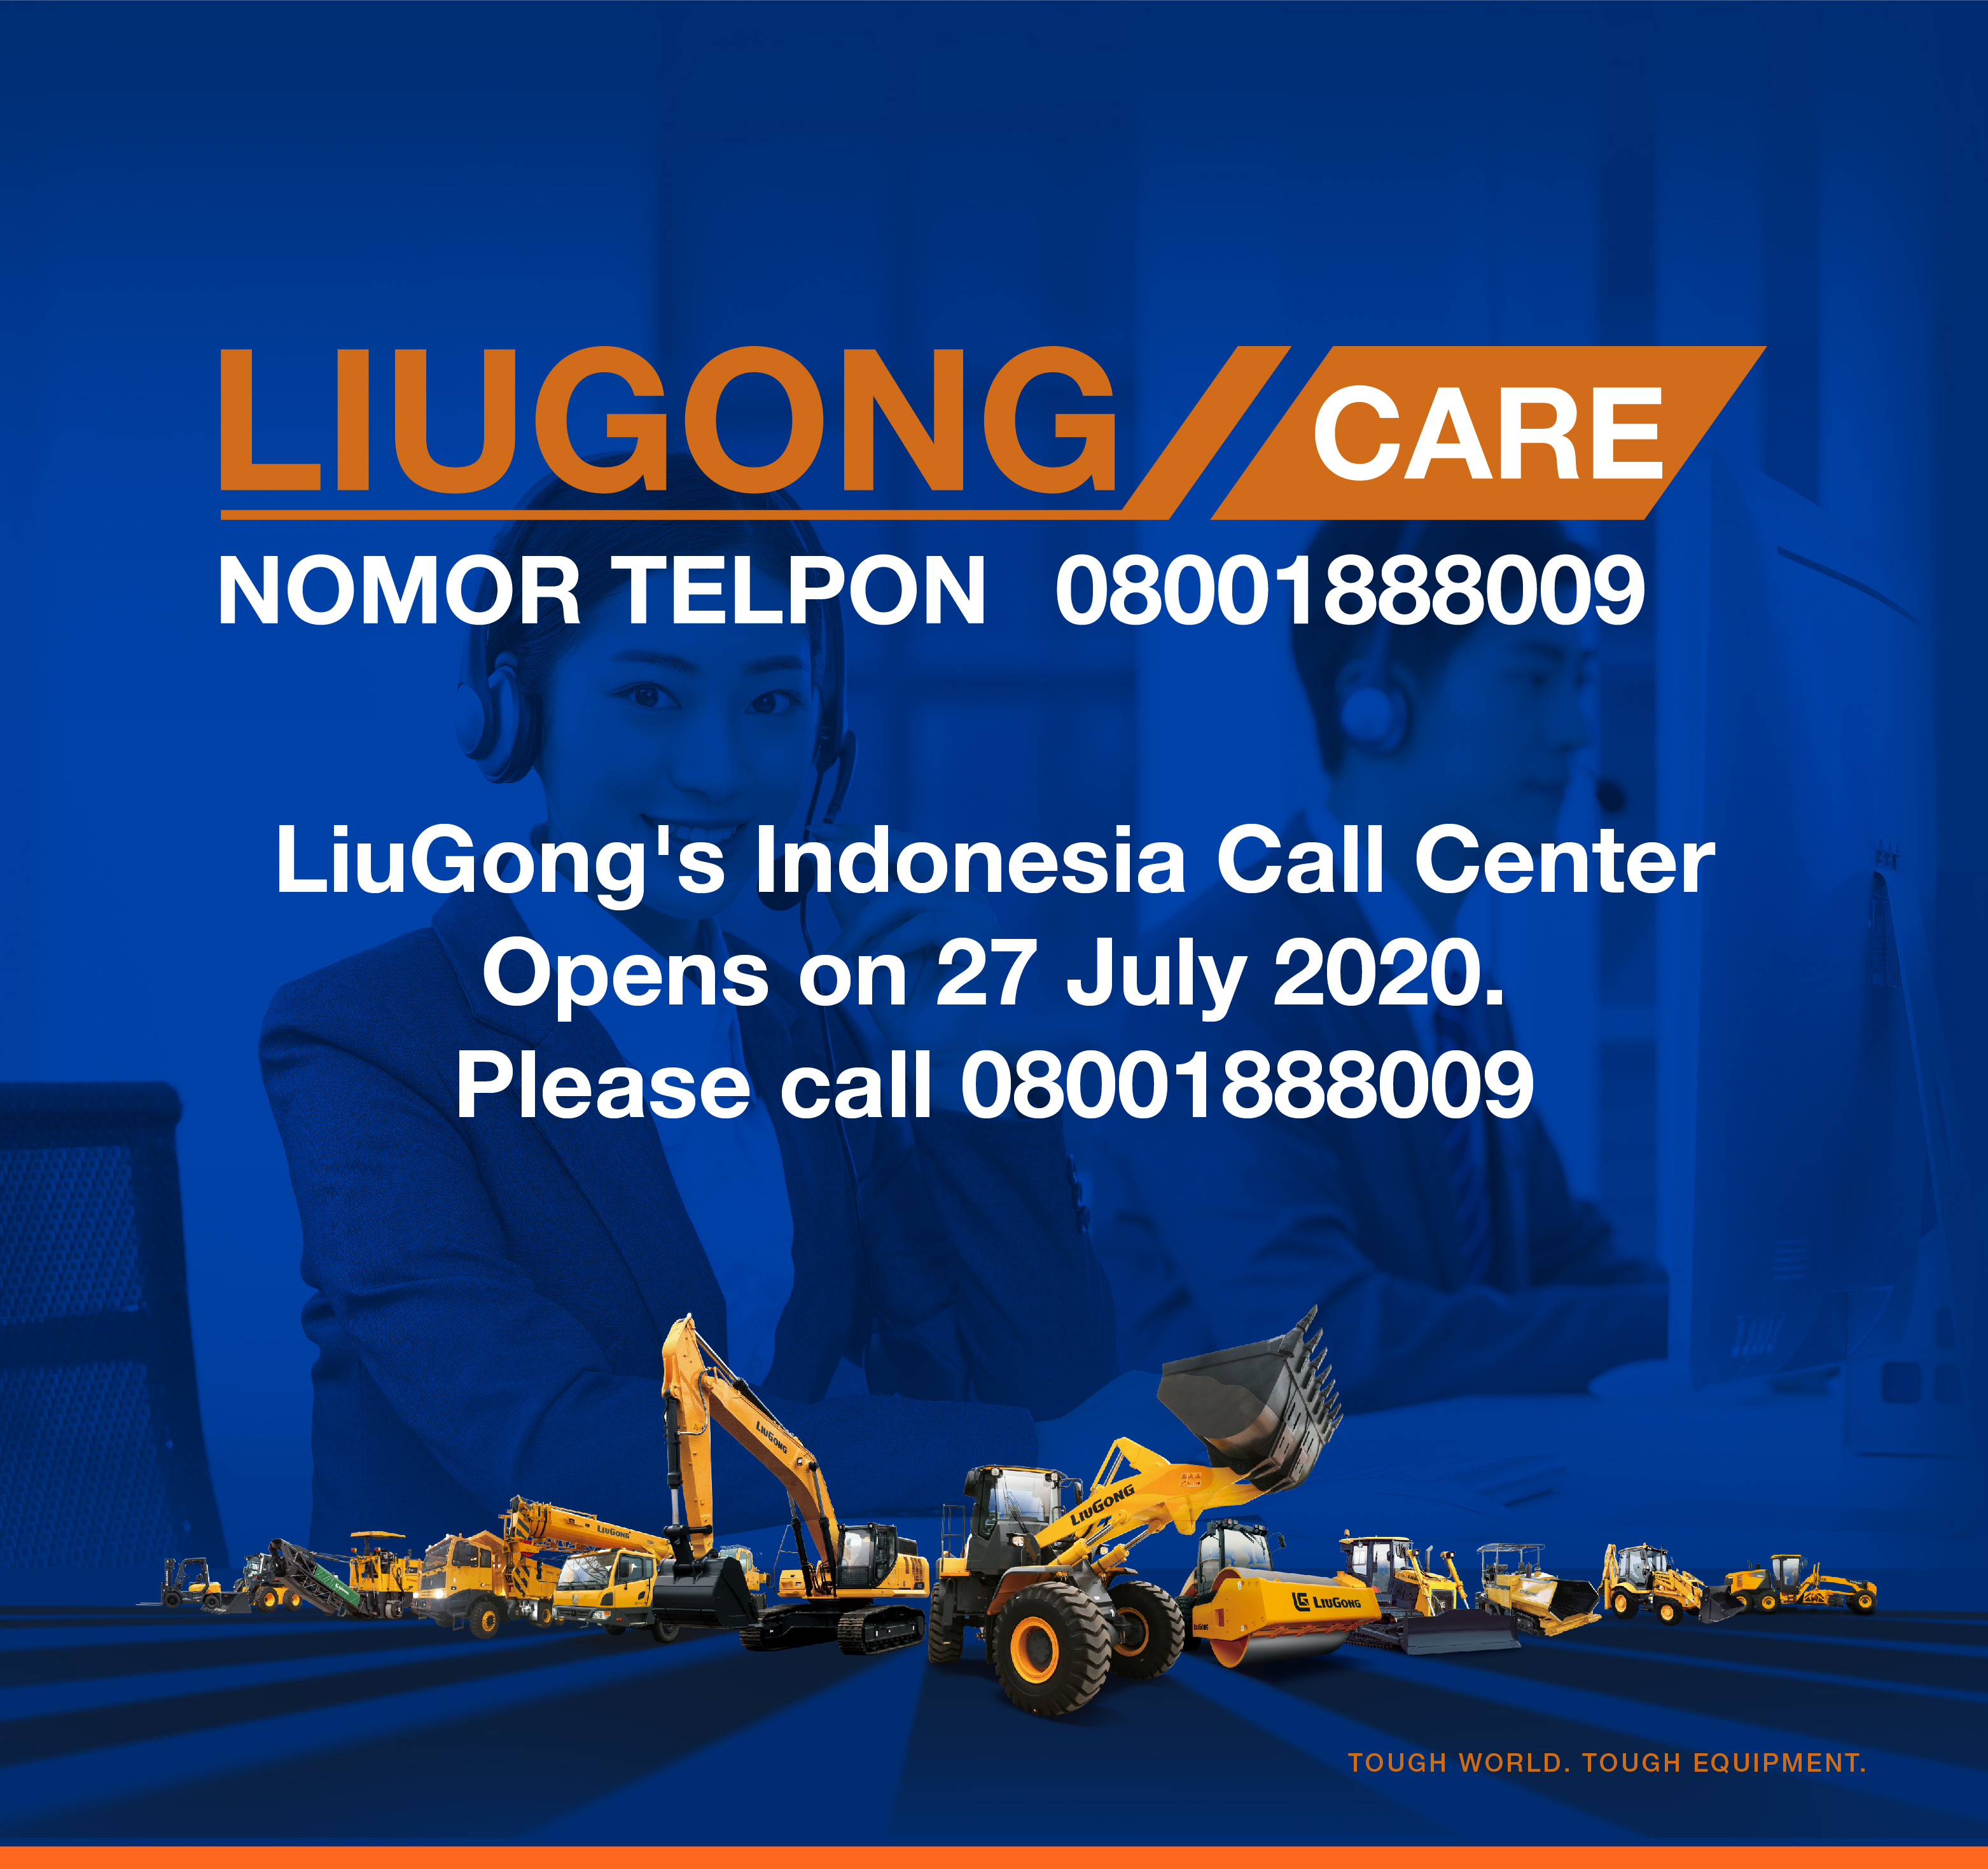 Service Hotline Launched in Indonesia